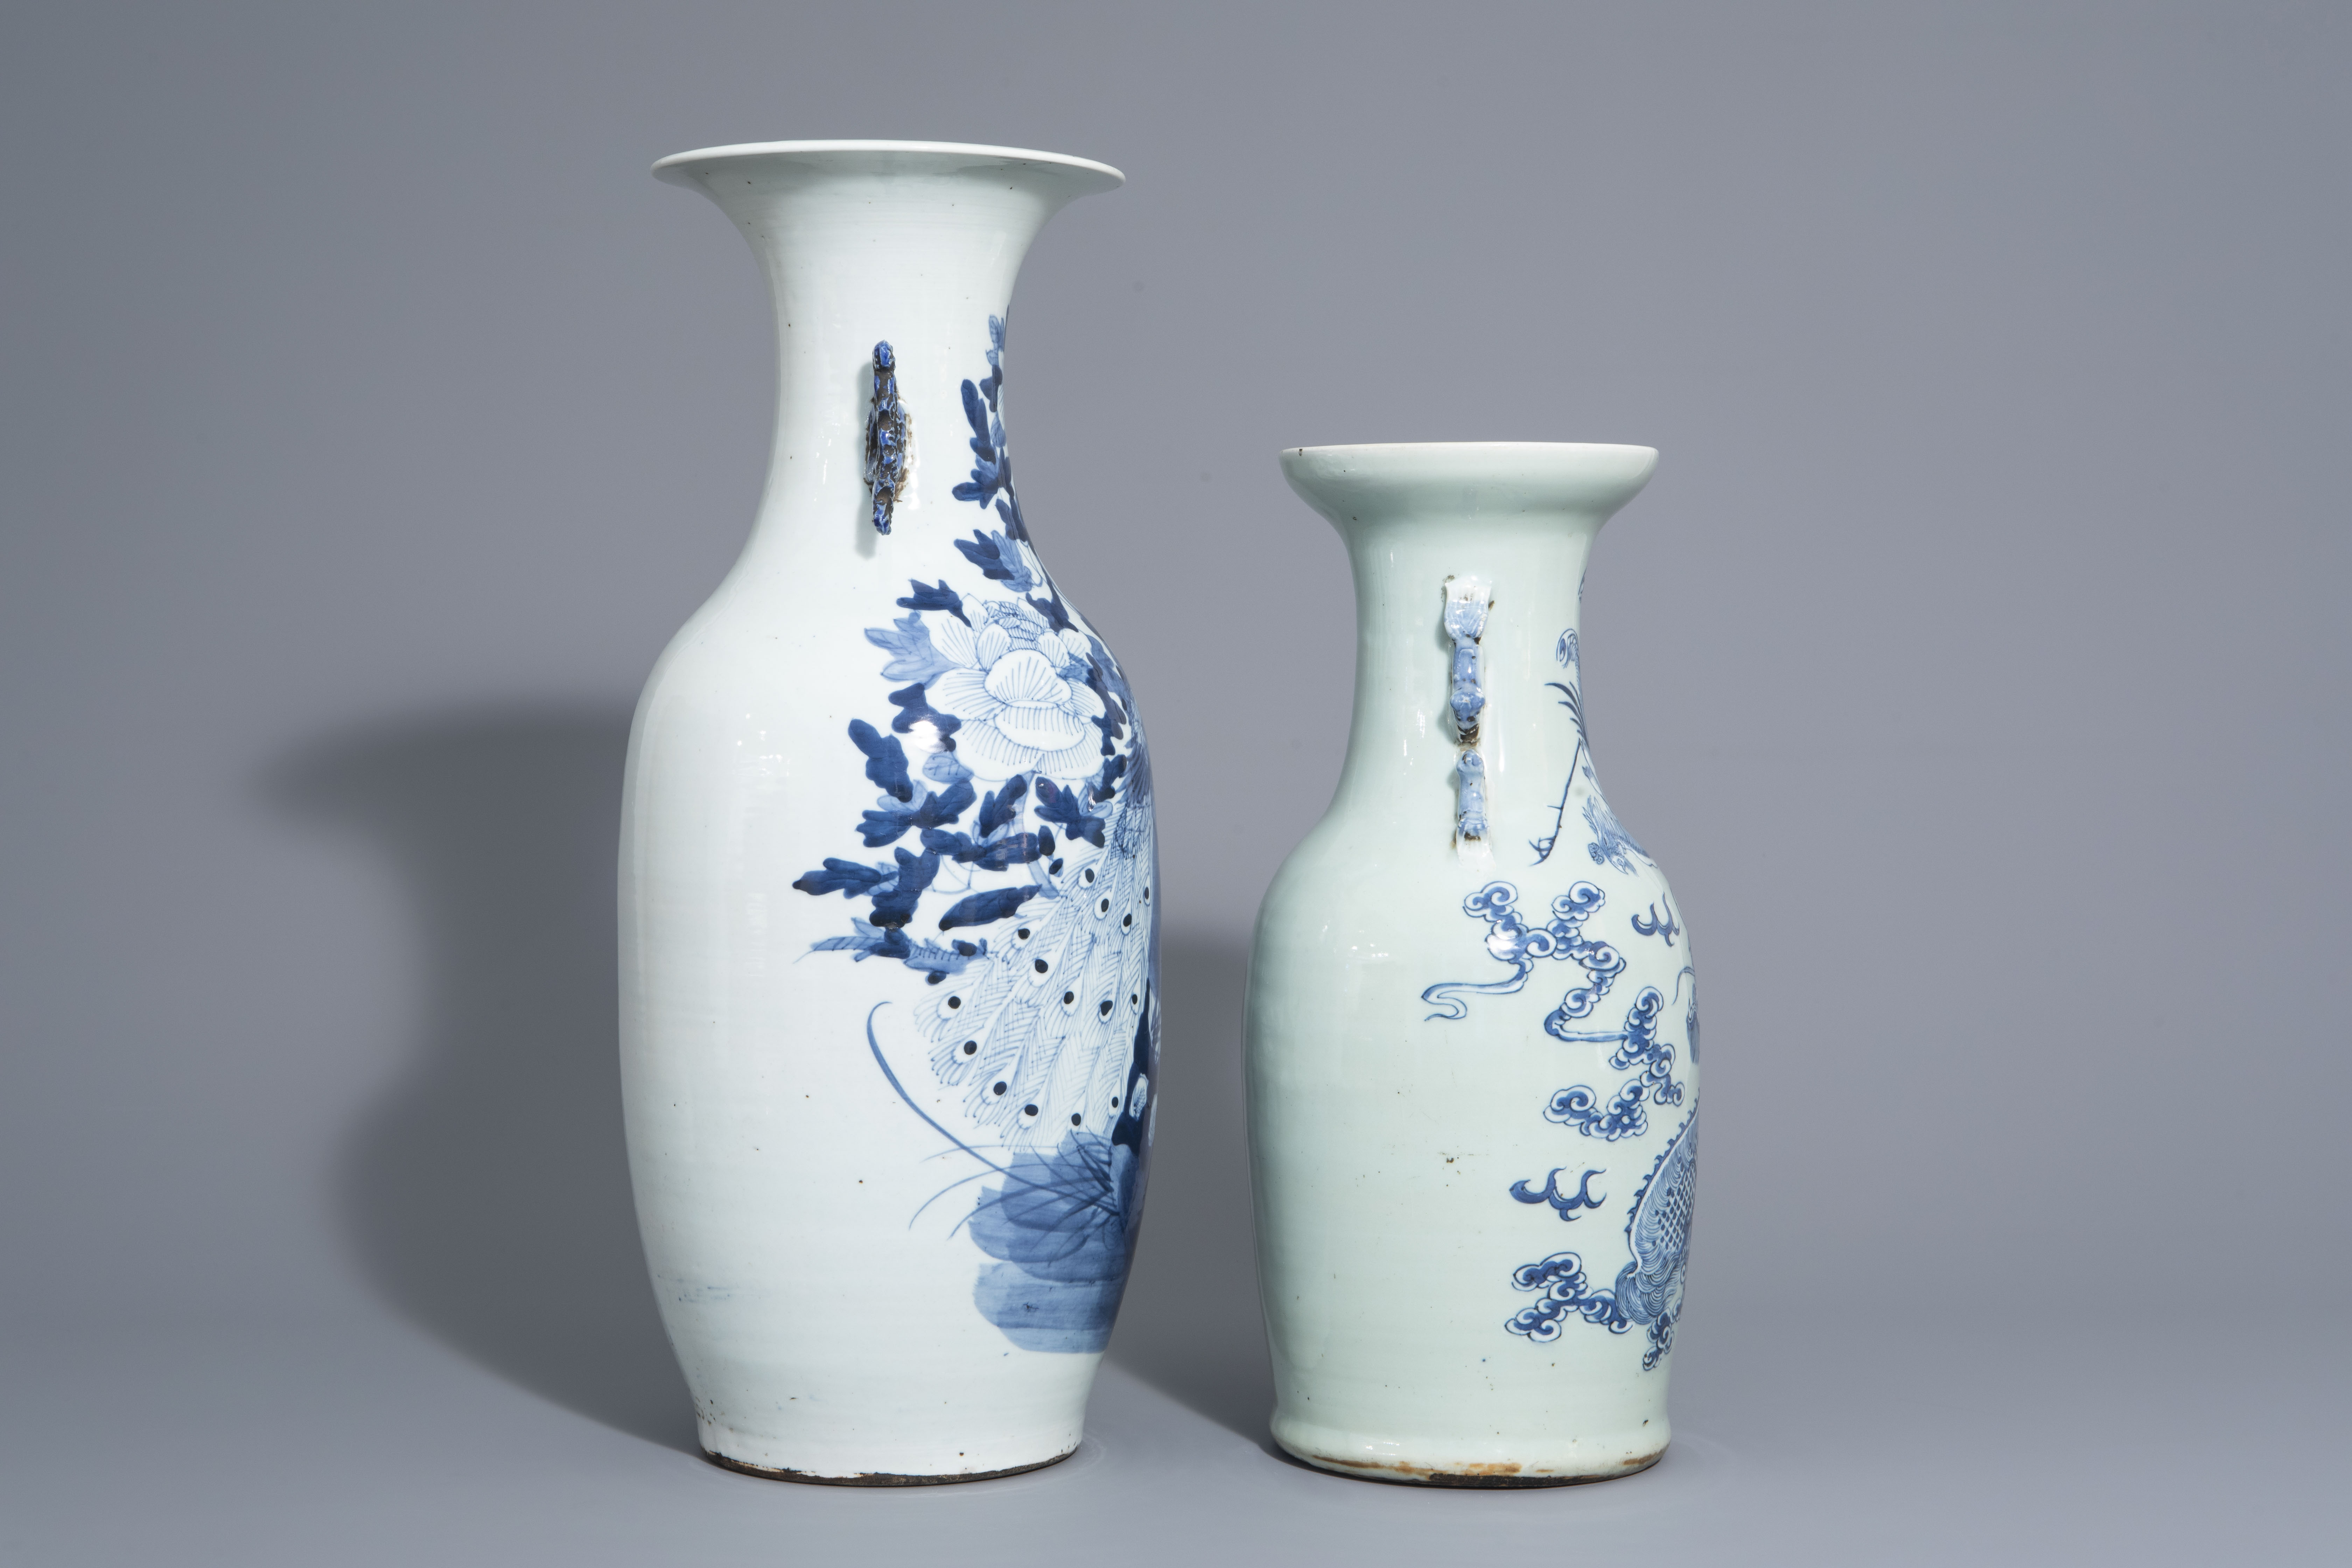 Two Chinese blue and white vases with mythological animals, 19th C. - Image 3 of 7